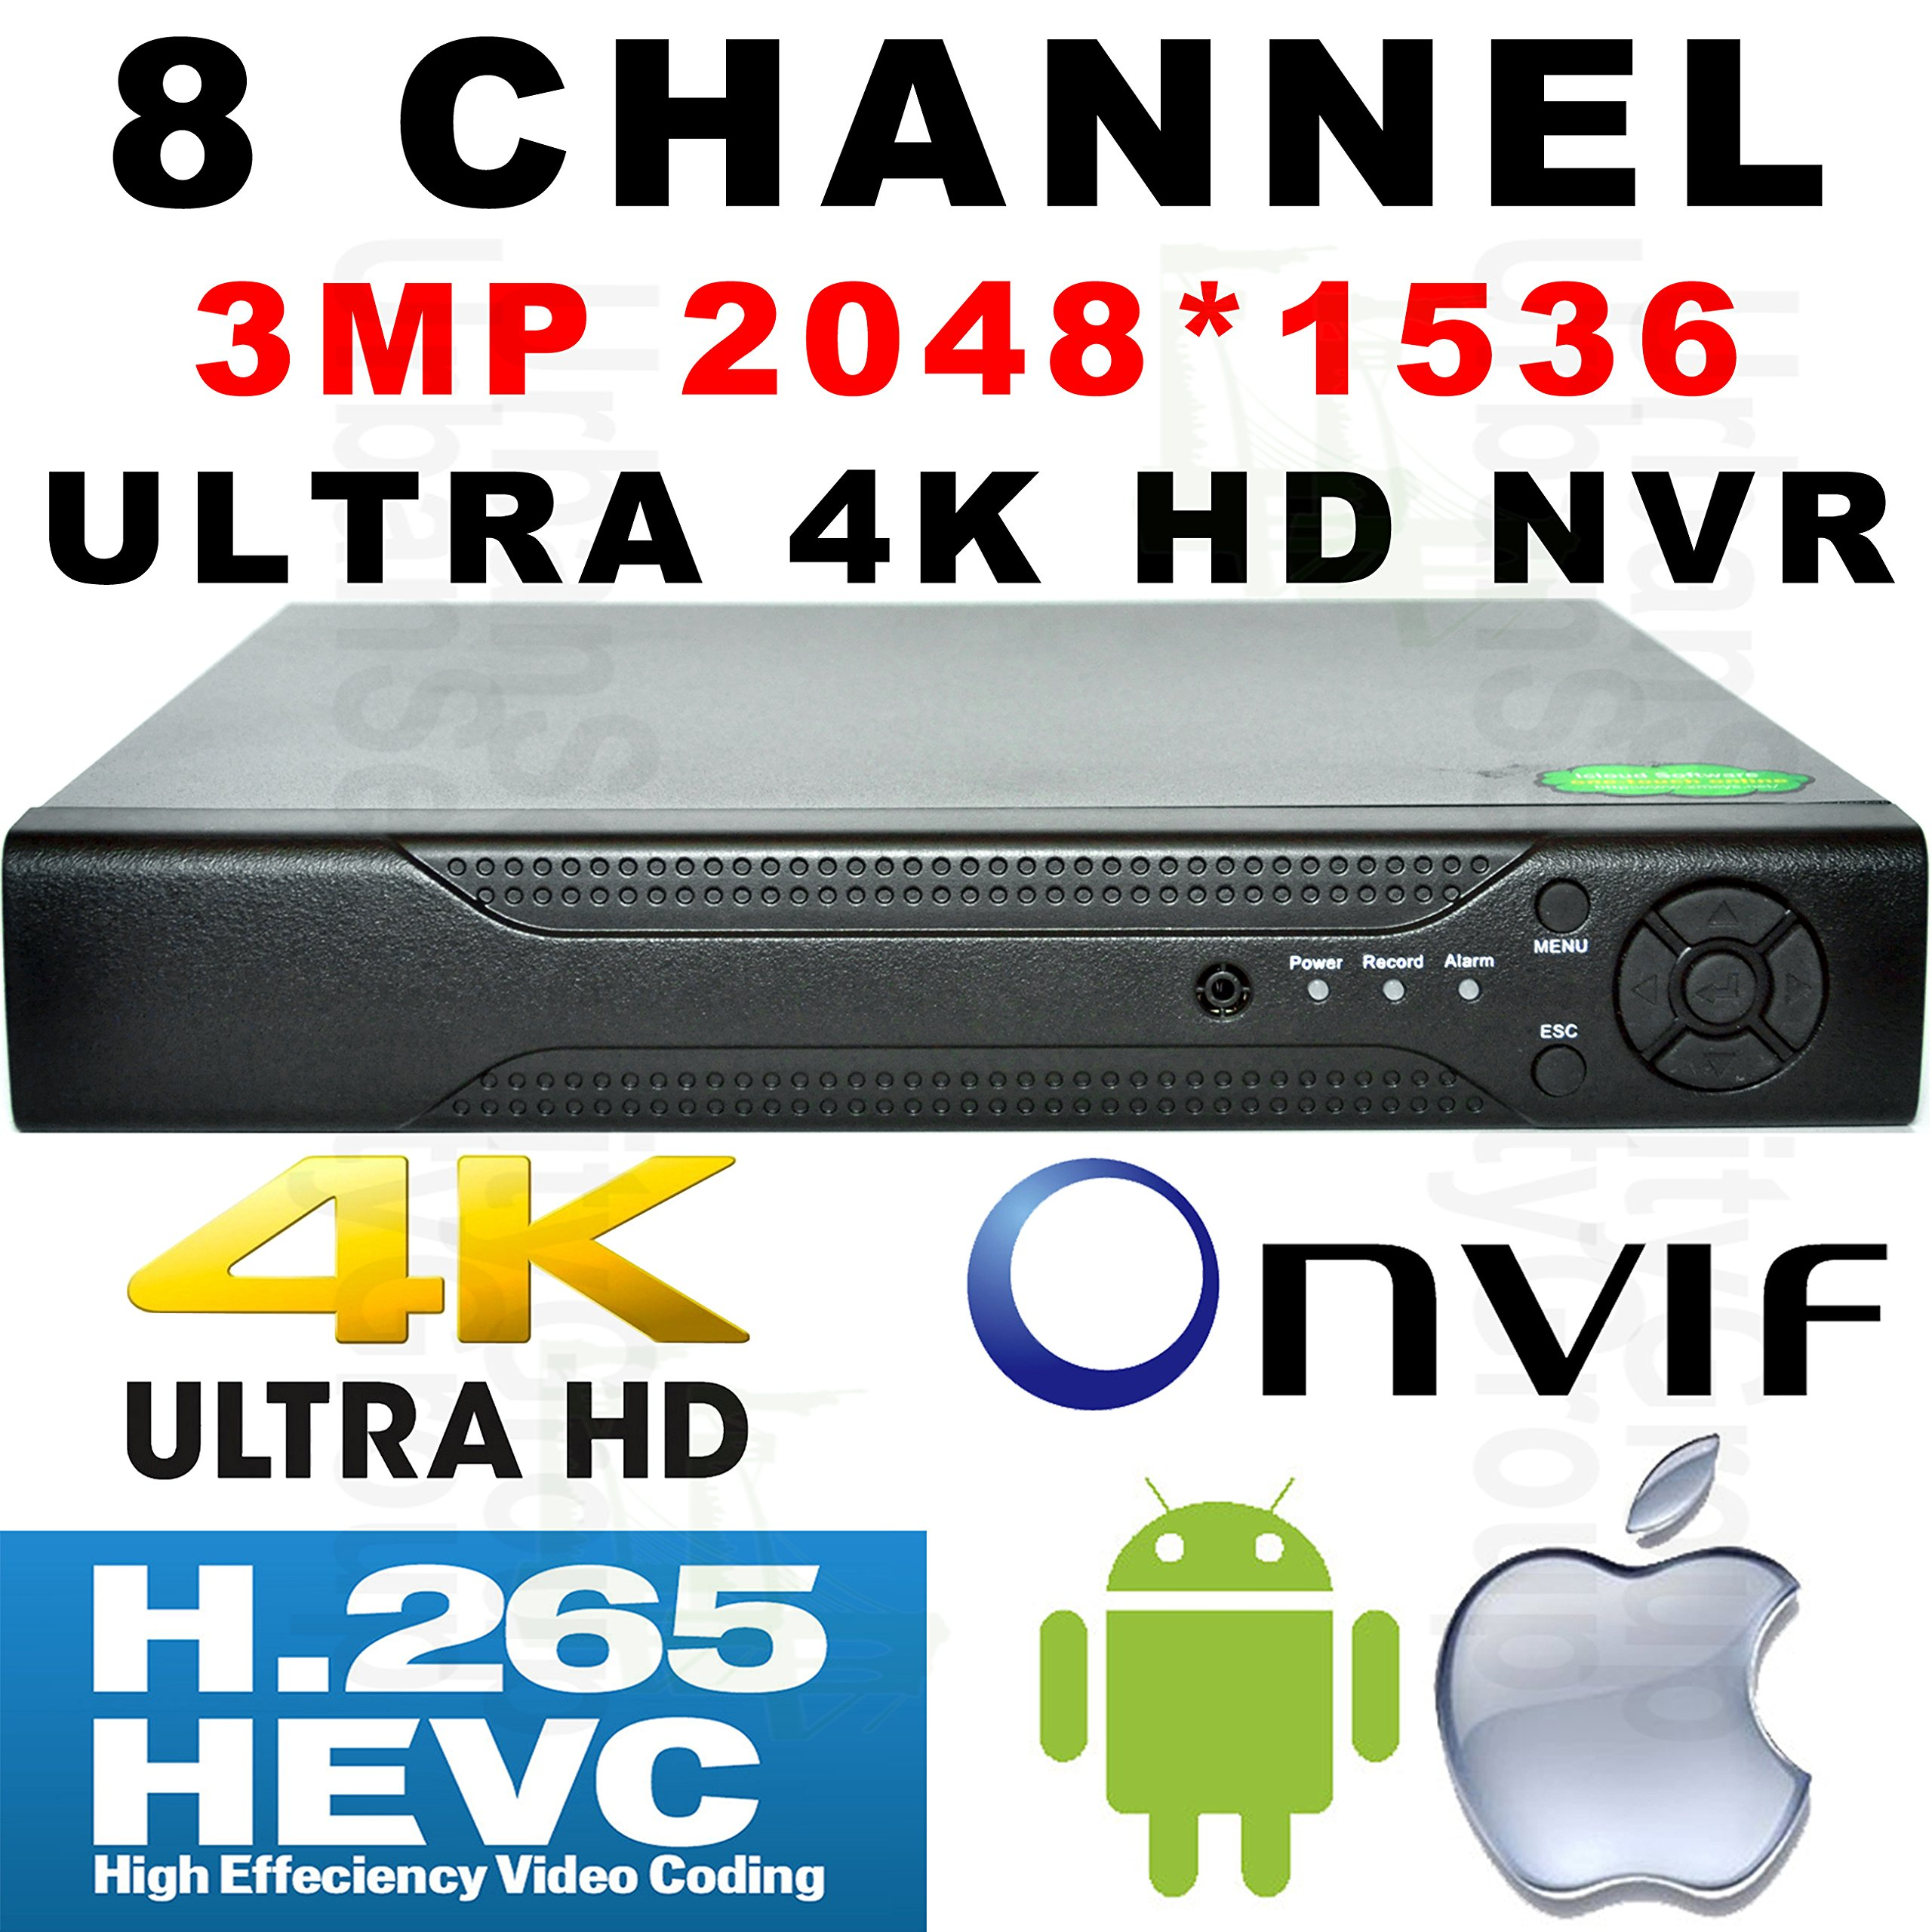 USG H.265 Ultra 4k IP Security Recorder NVR 8ch @ 3MP, 4ch @ 5MP, 16ch @ 960P IP Cameras Max 12TB HDD, ONVIF 2.4, RTSP, HDMI + VGA, 2x USB Ports, RS485, Gigabit RJ45 Apple Android Phone Viewing by Urban Security Group (Image #1)